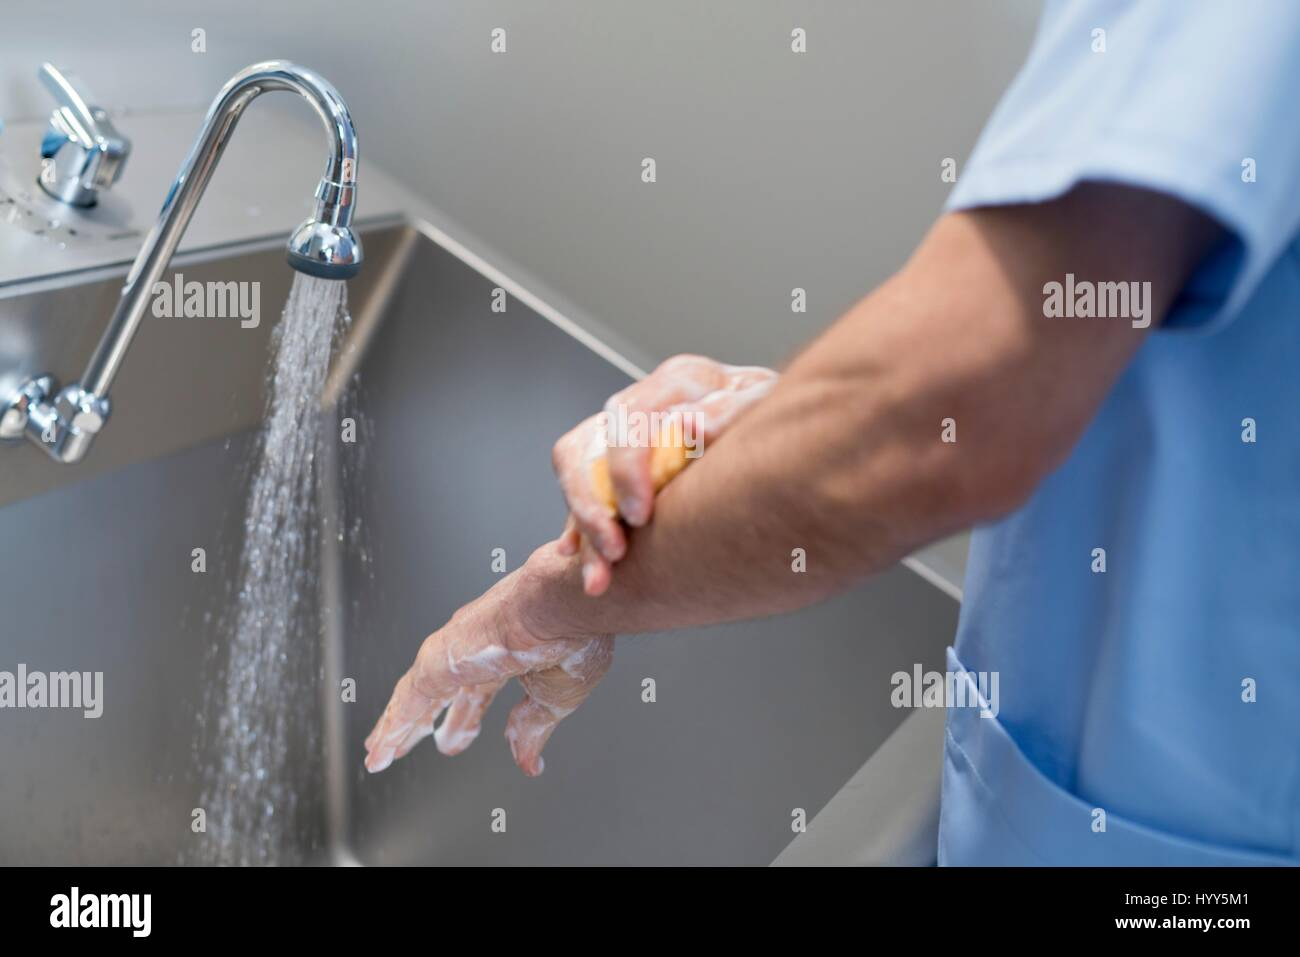 Doctor cleaning hands with soap and water in hospital. - Stock Image